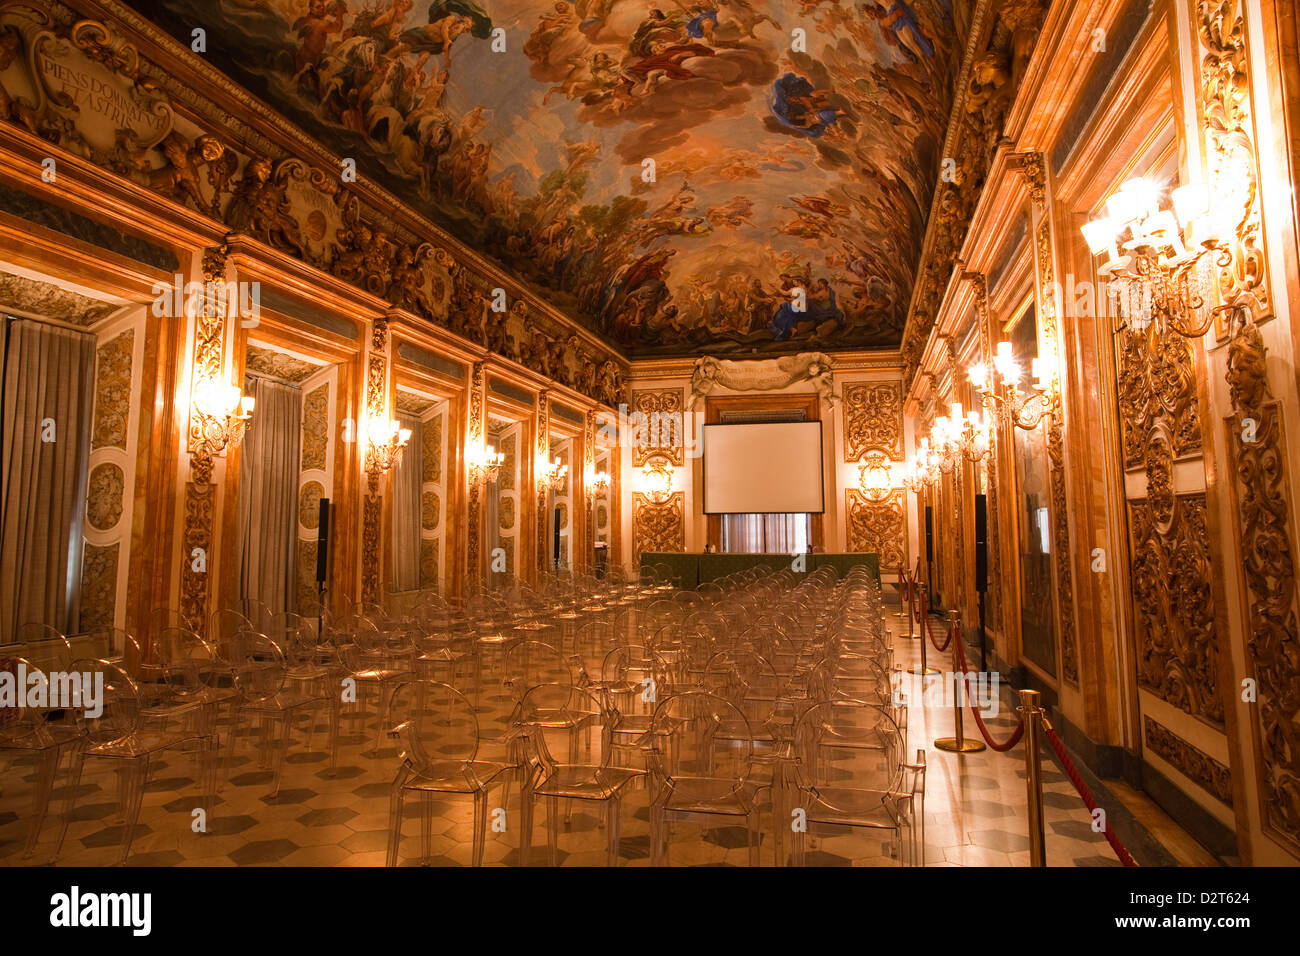 A beautifully ornate room in Palazzo Medici Riccardi, Florence, Tuscany, Italy, Europe - Stock Image